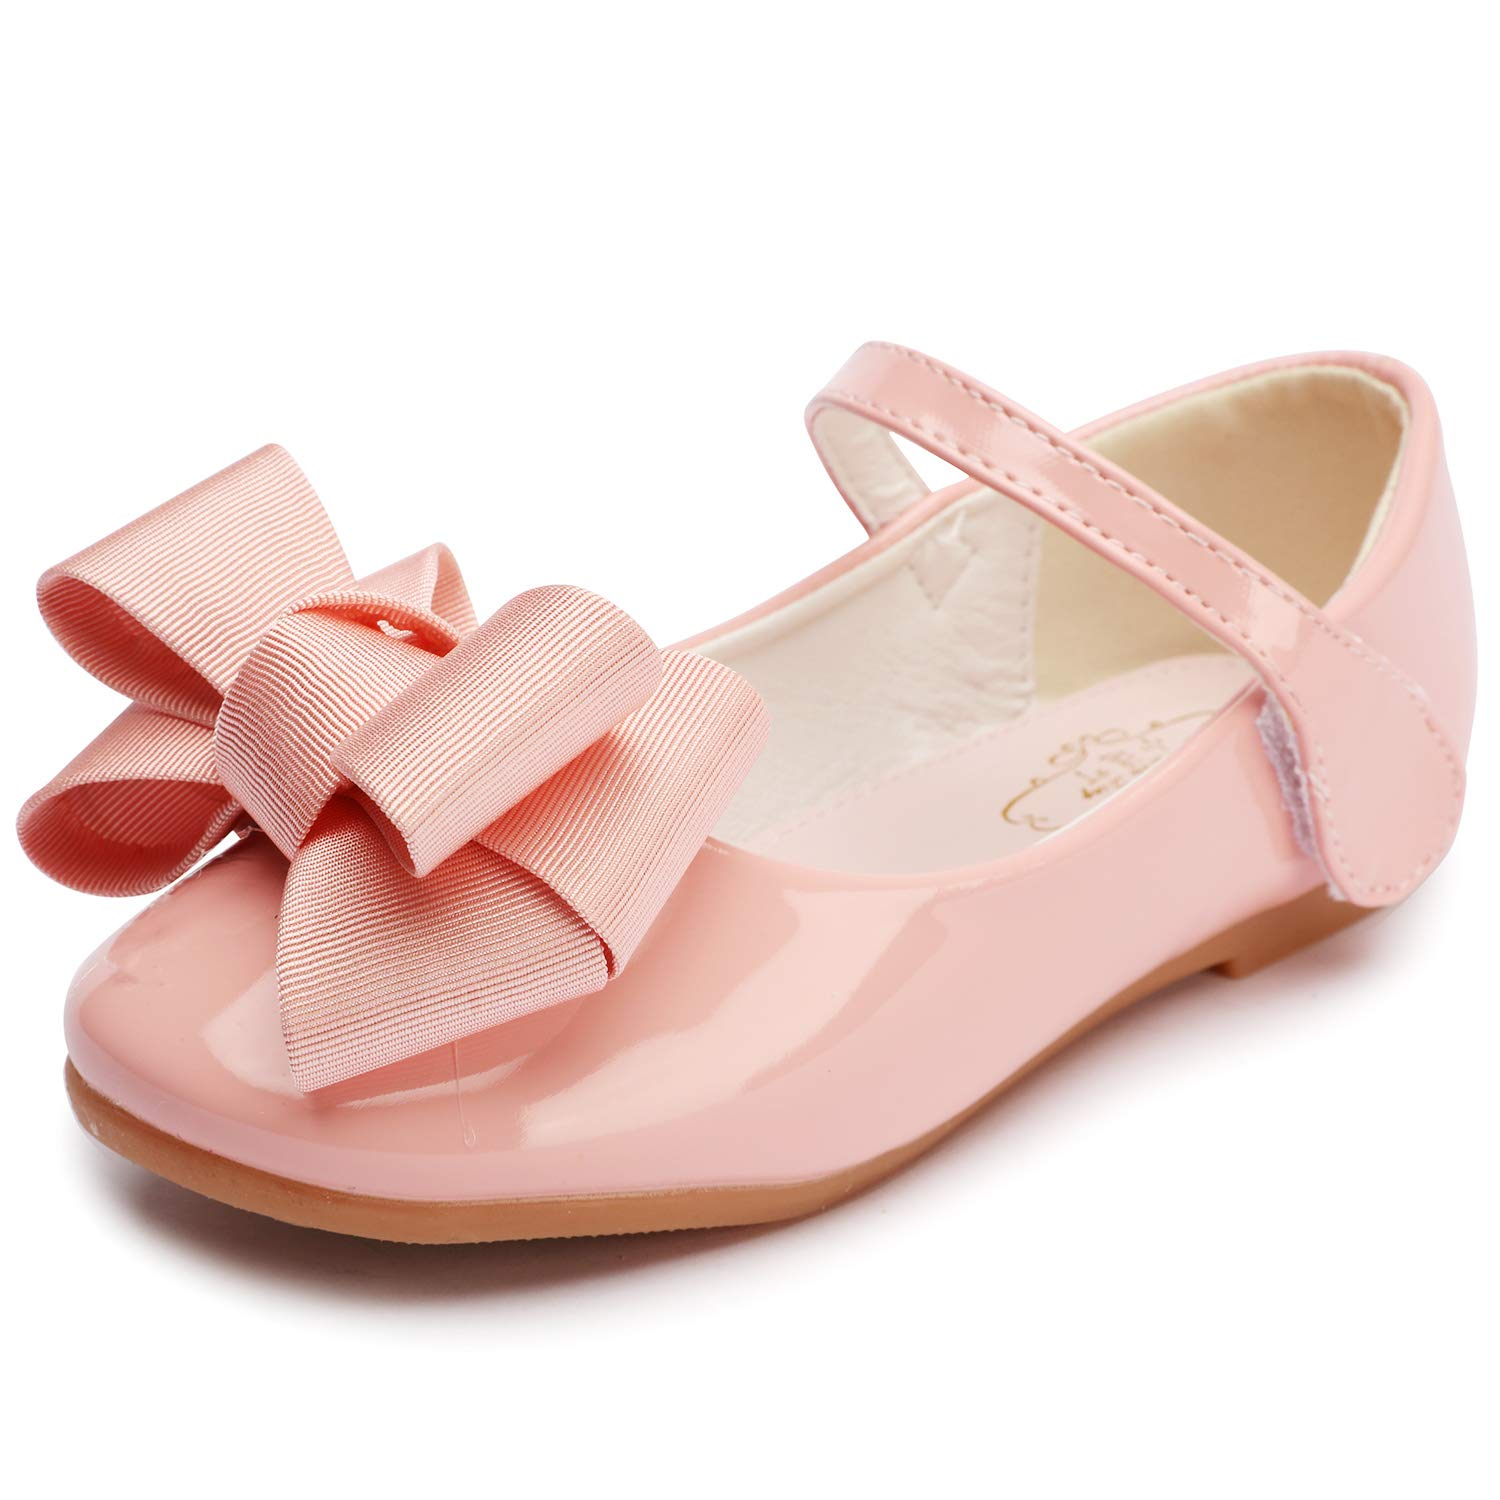 FLARY White//Gold Toddlers//Little Girls Ballet Strap Flat Mary Jane Dress Shoes with Bow